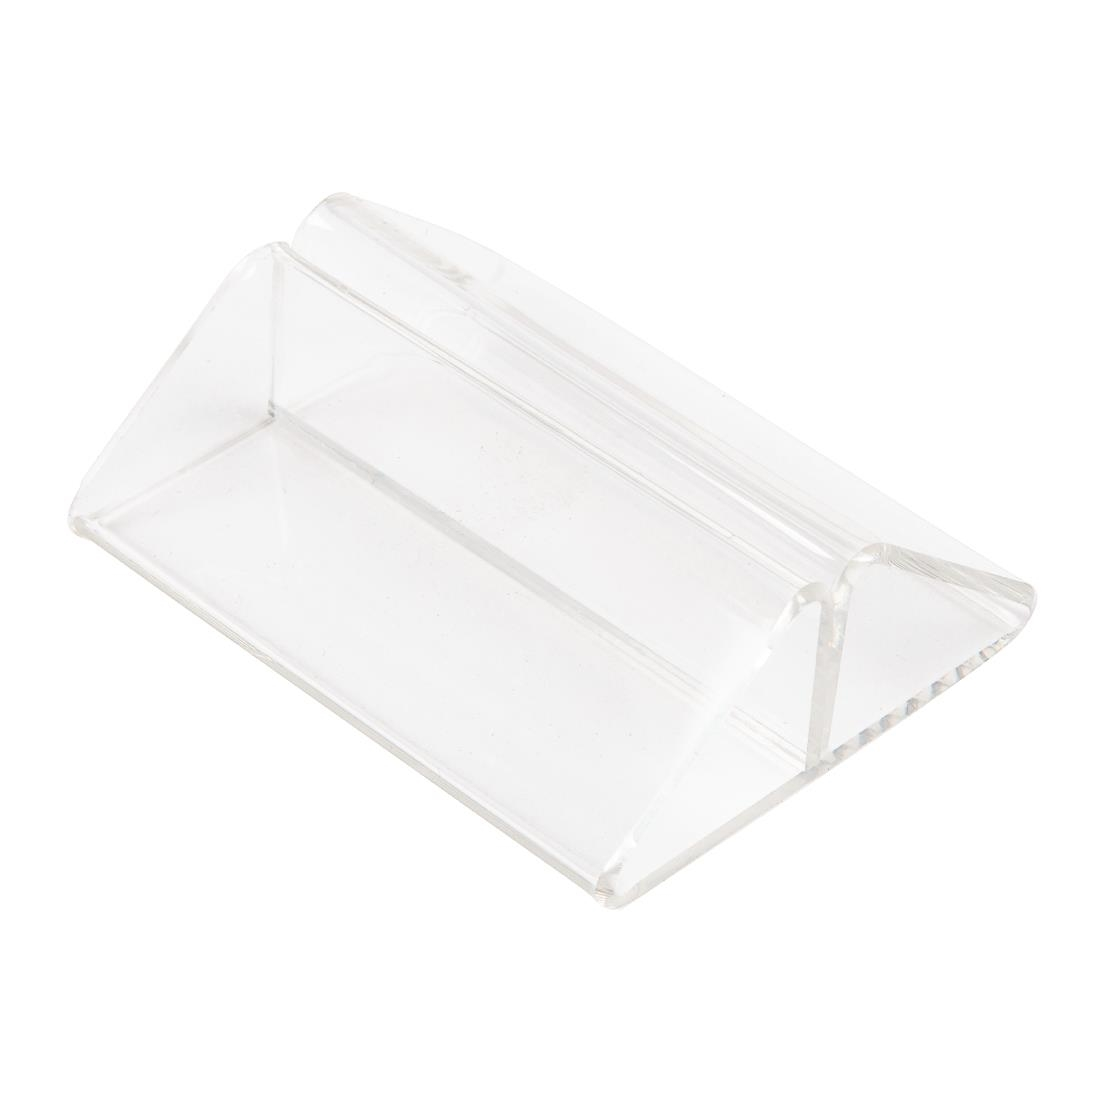 Image of Acrylic Triangle Menu Holder